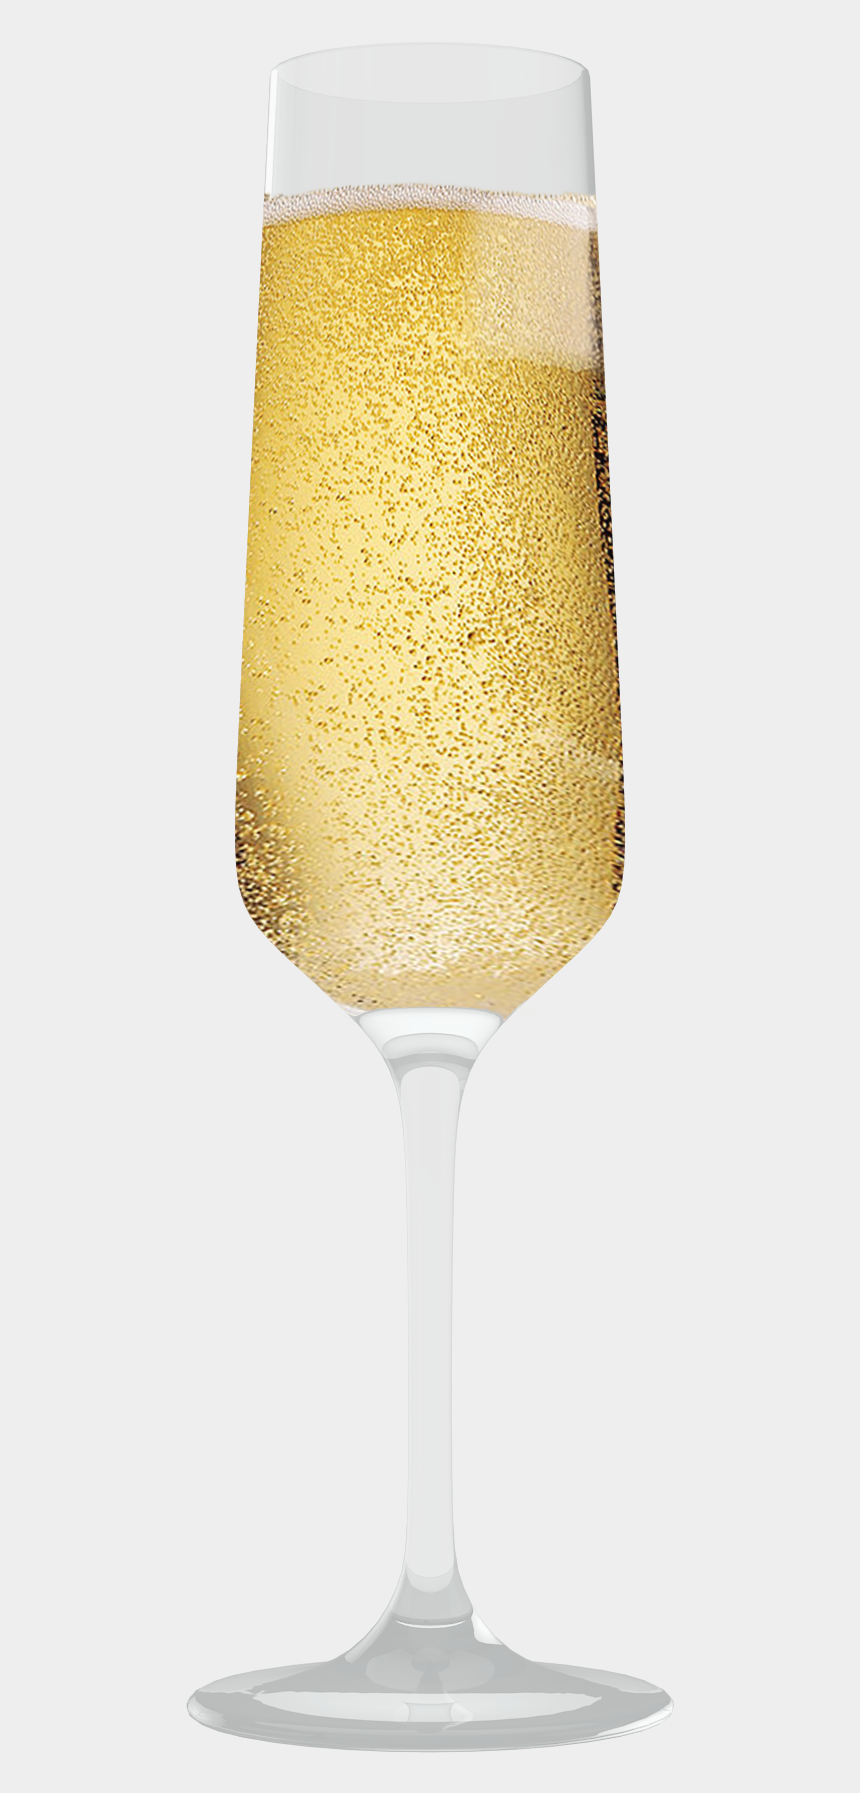 champagne glass clipart, Cartoons - Glass Champagne Png Clip Art - Champagne Stemware